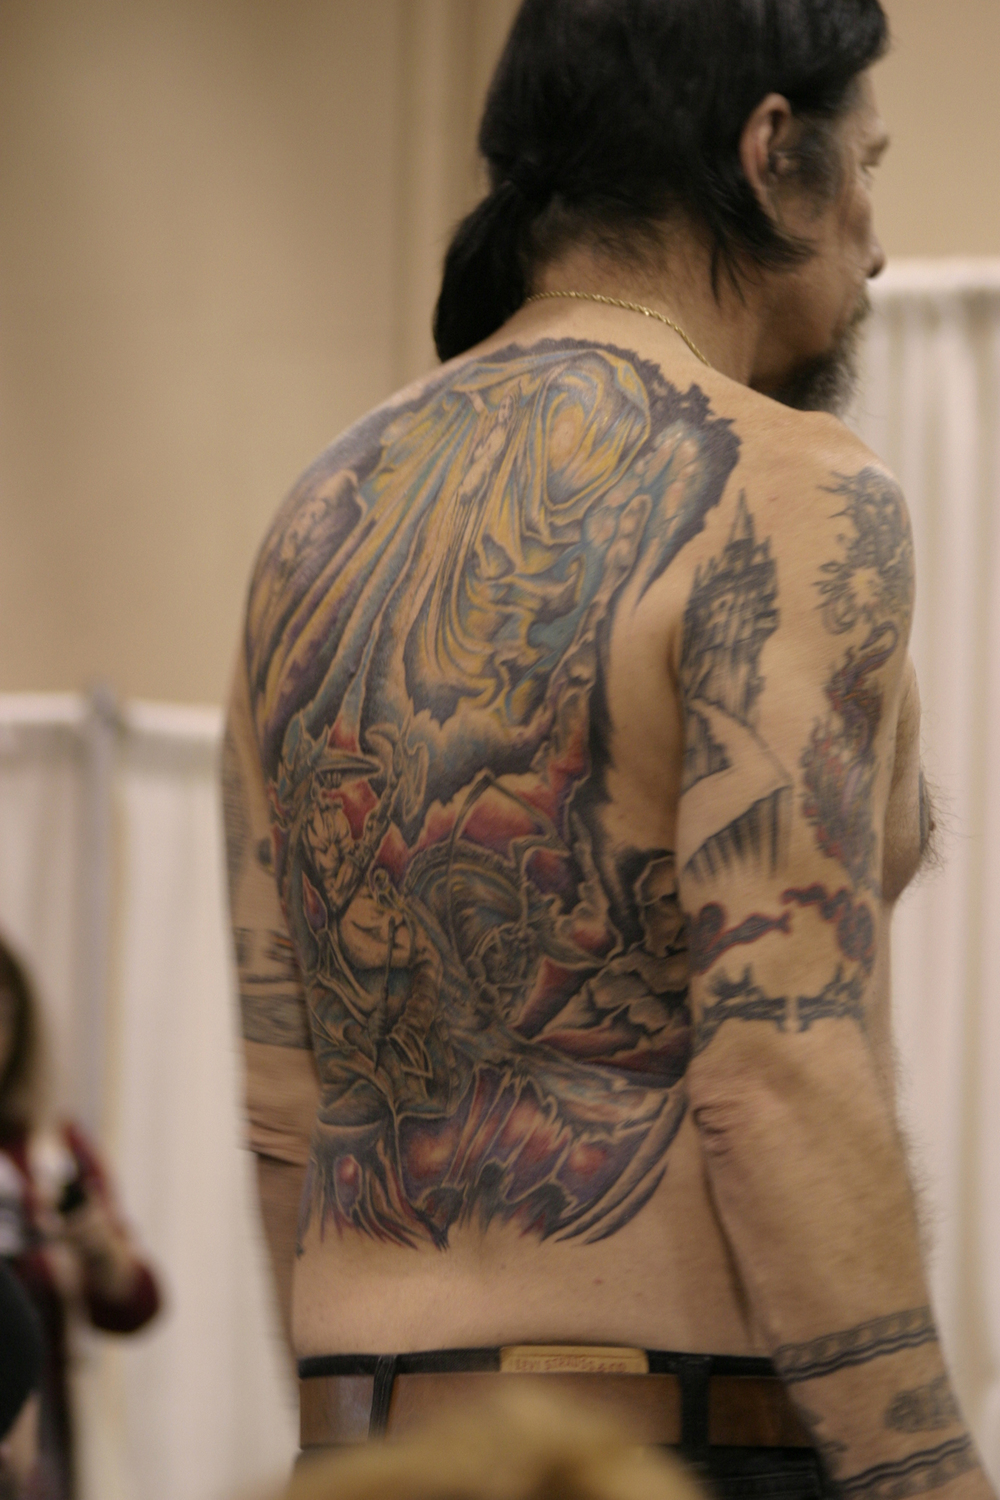 Tattoo_Expo032.JPG